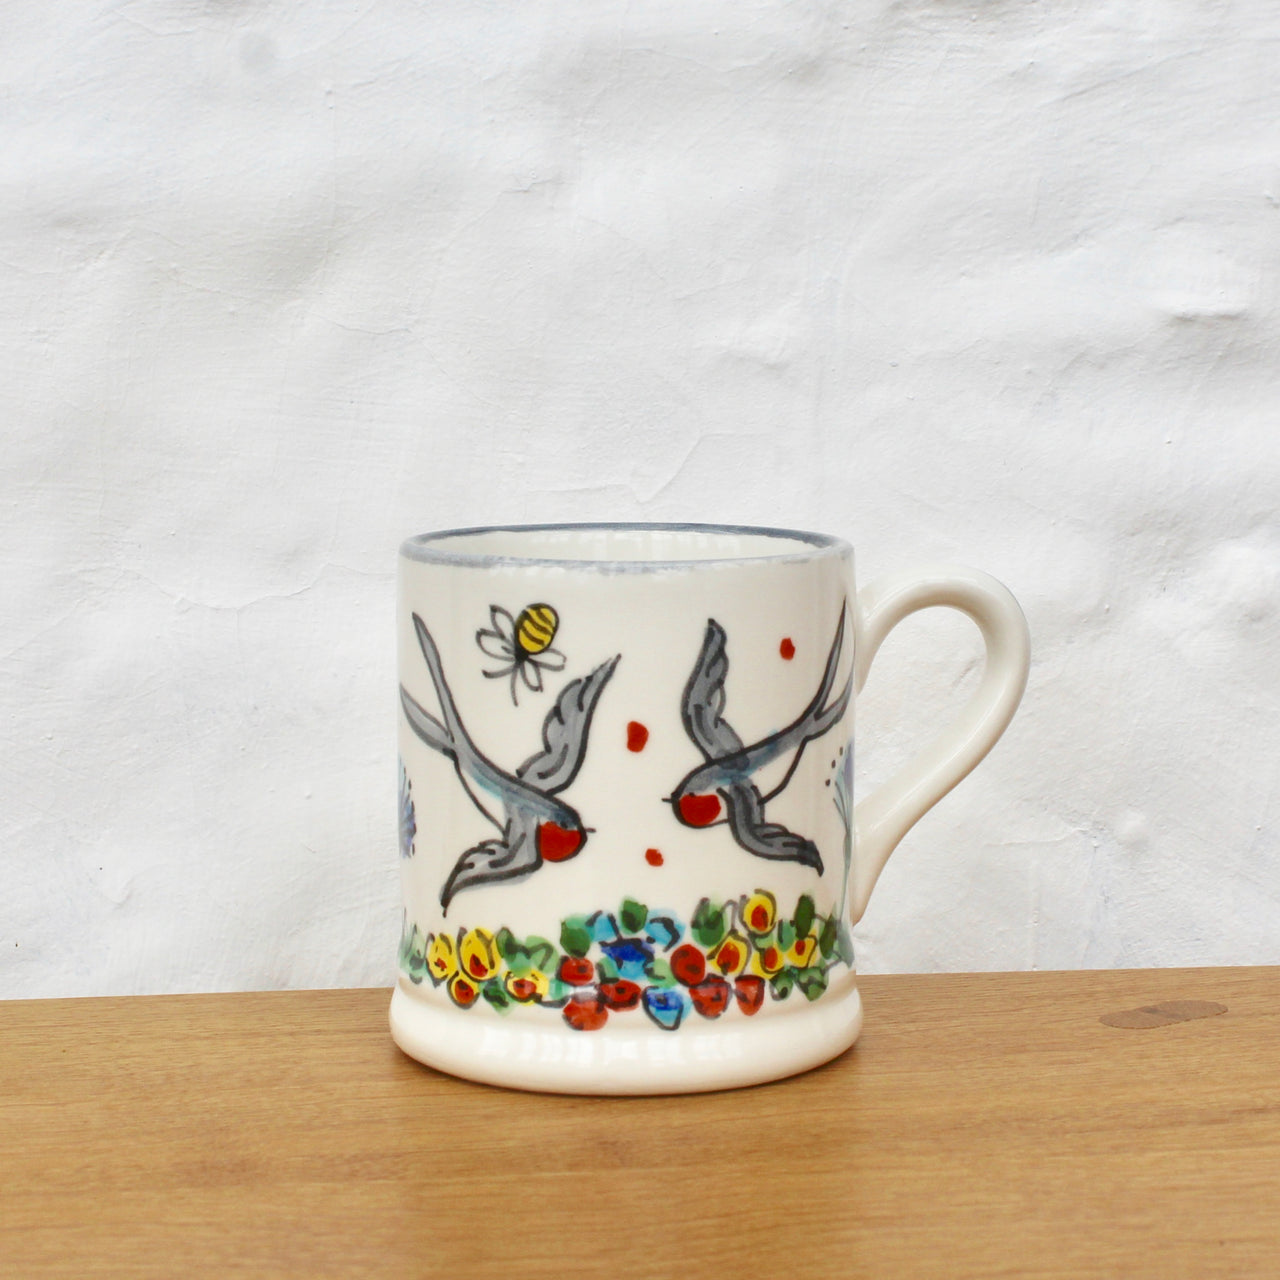 Hand-Painted 'Summer Swallow' Mug